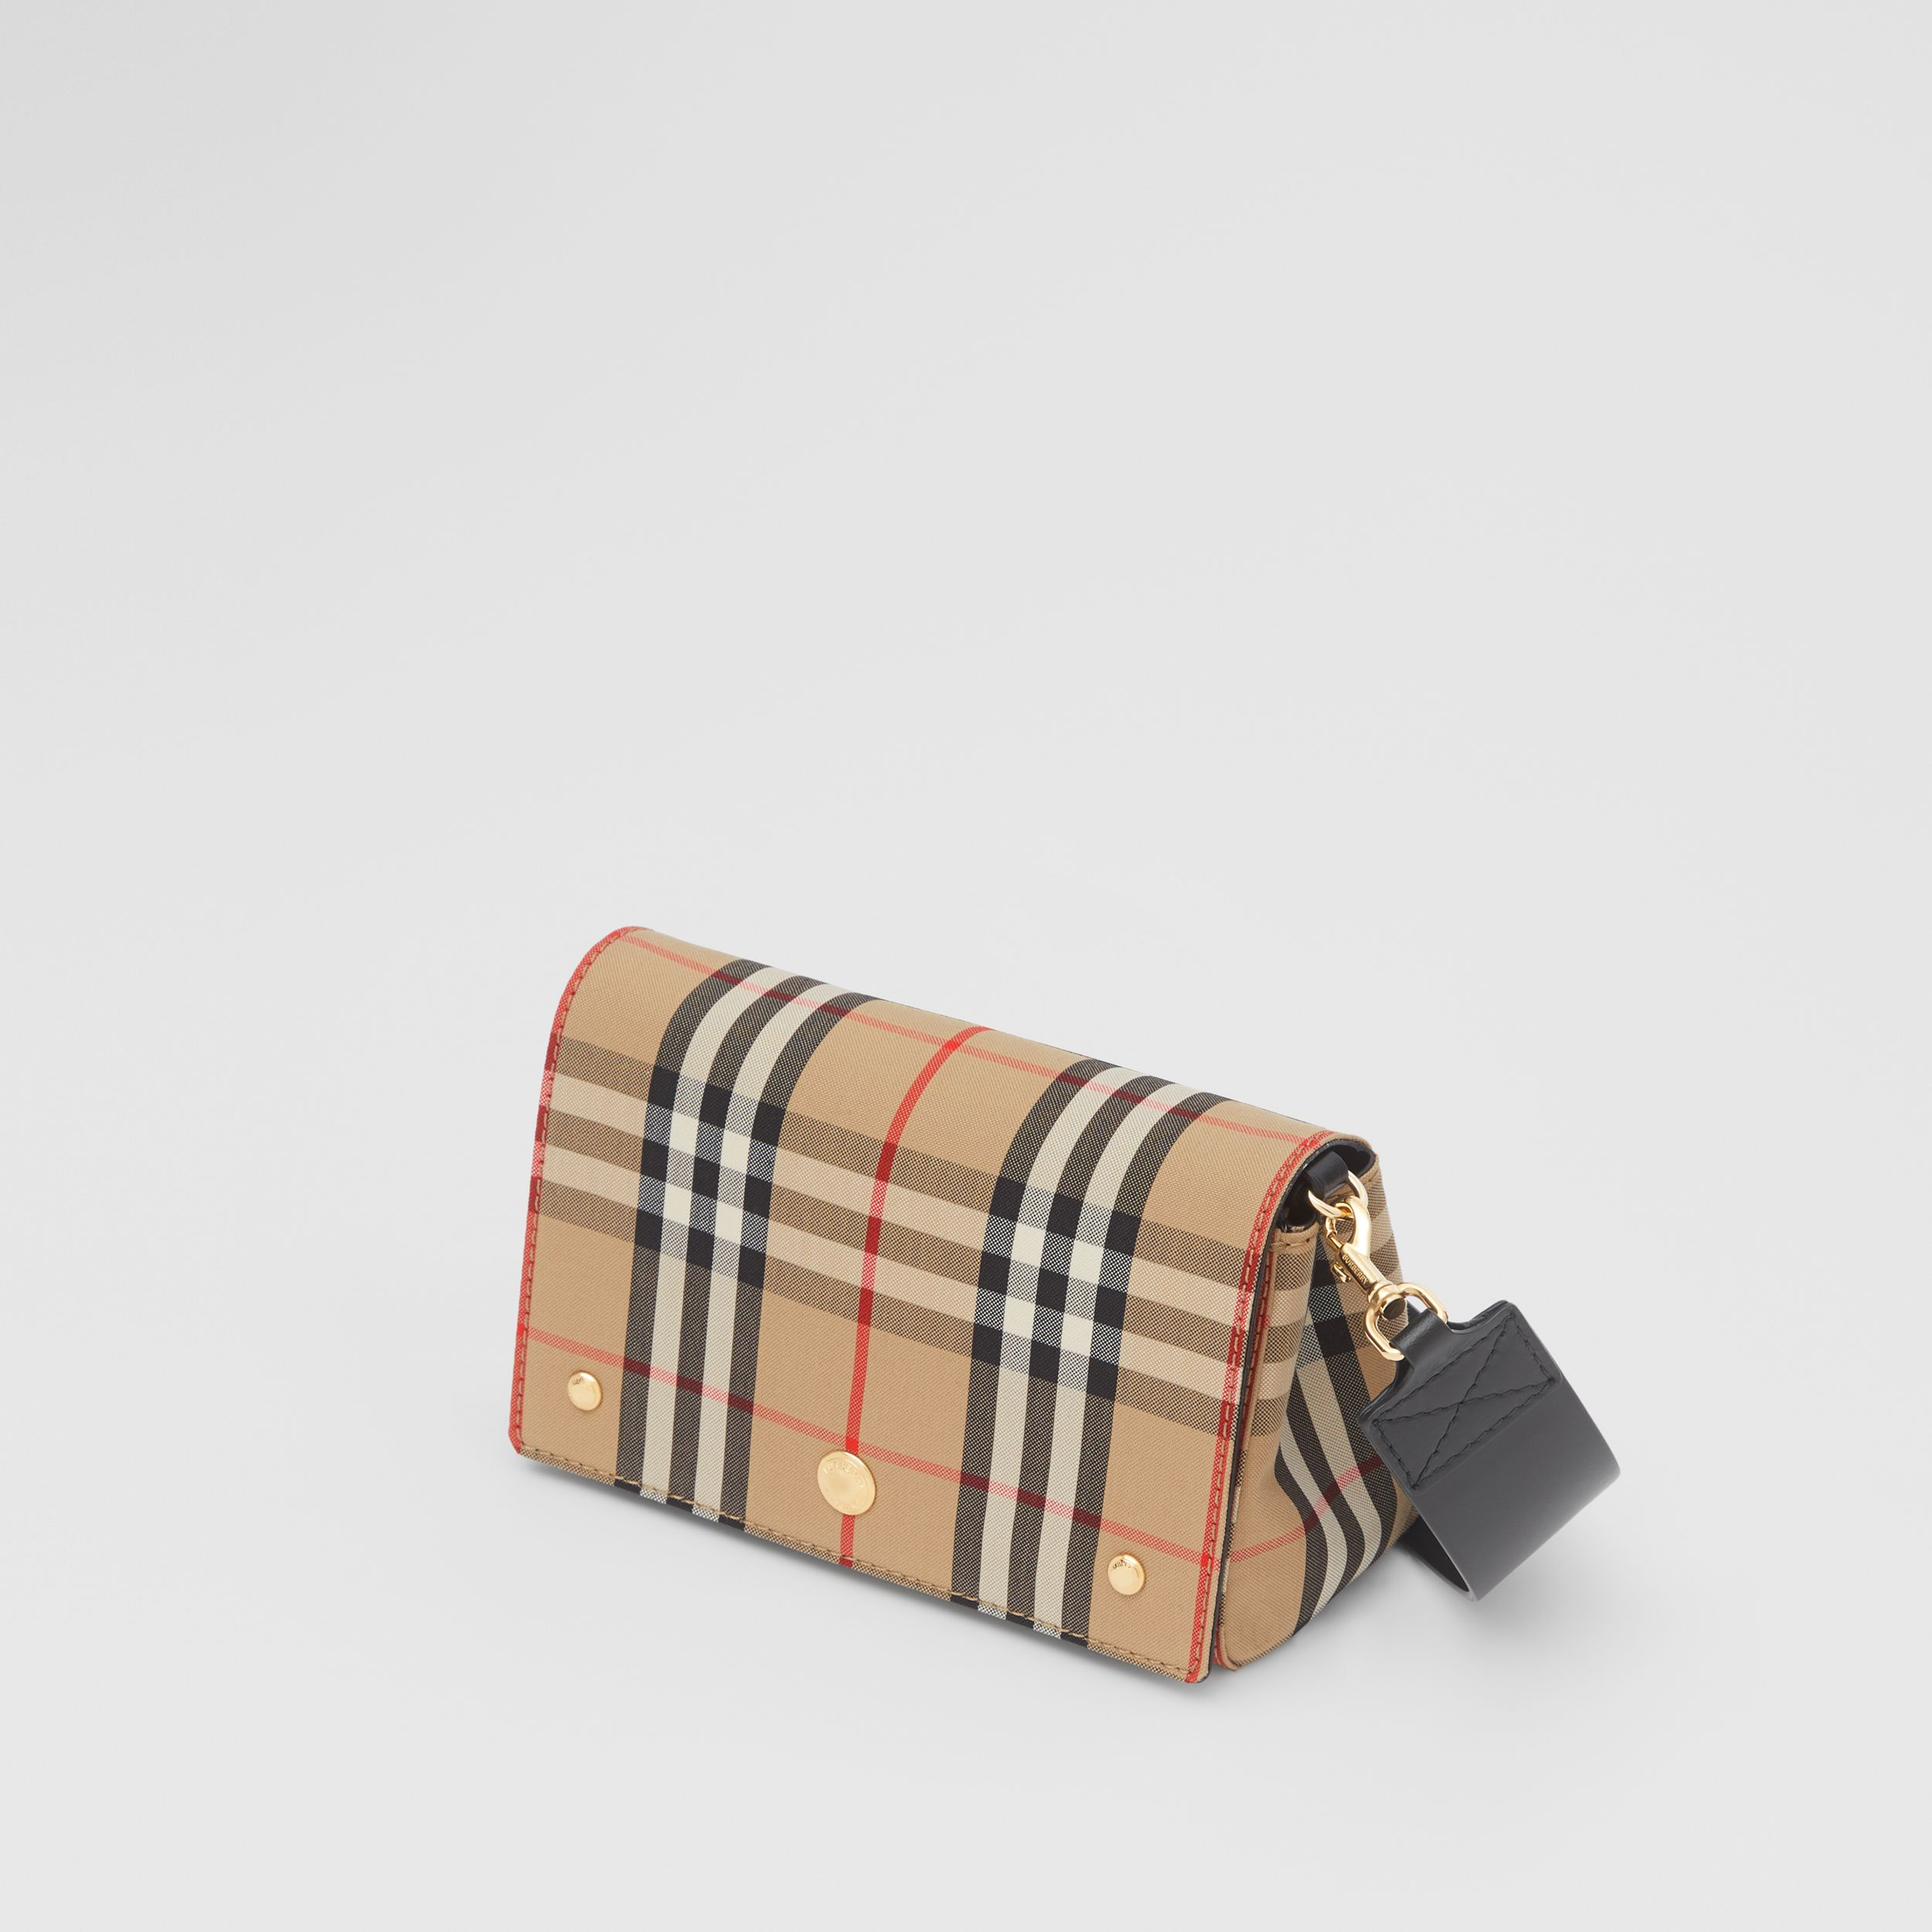 Small Vintage Check and Leather Crossbody Bag in Archive Beige - Women | Burberry - 4